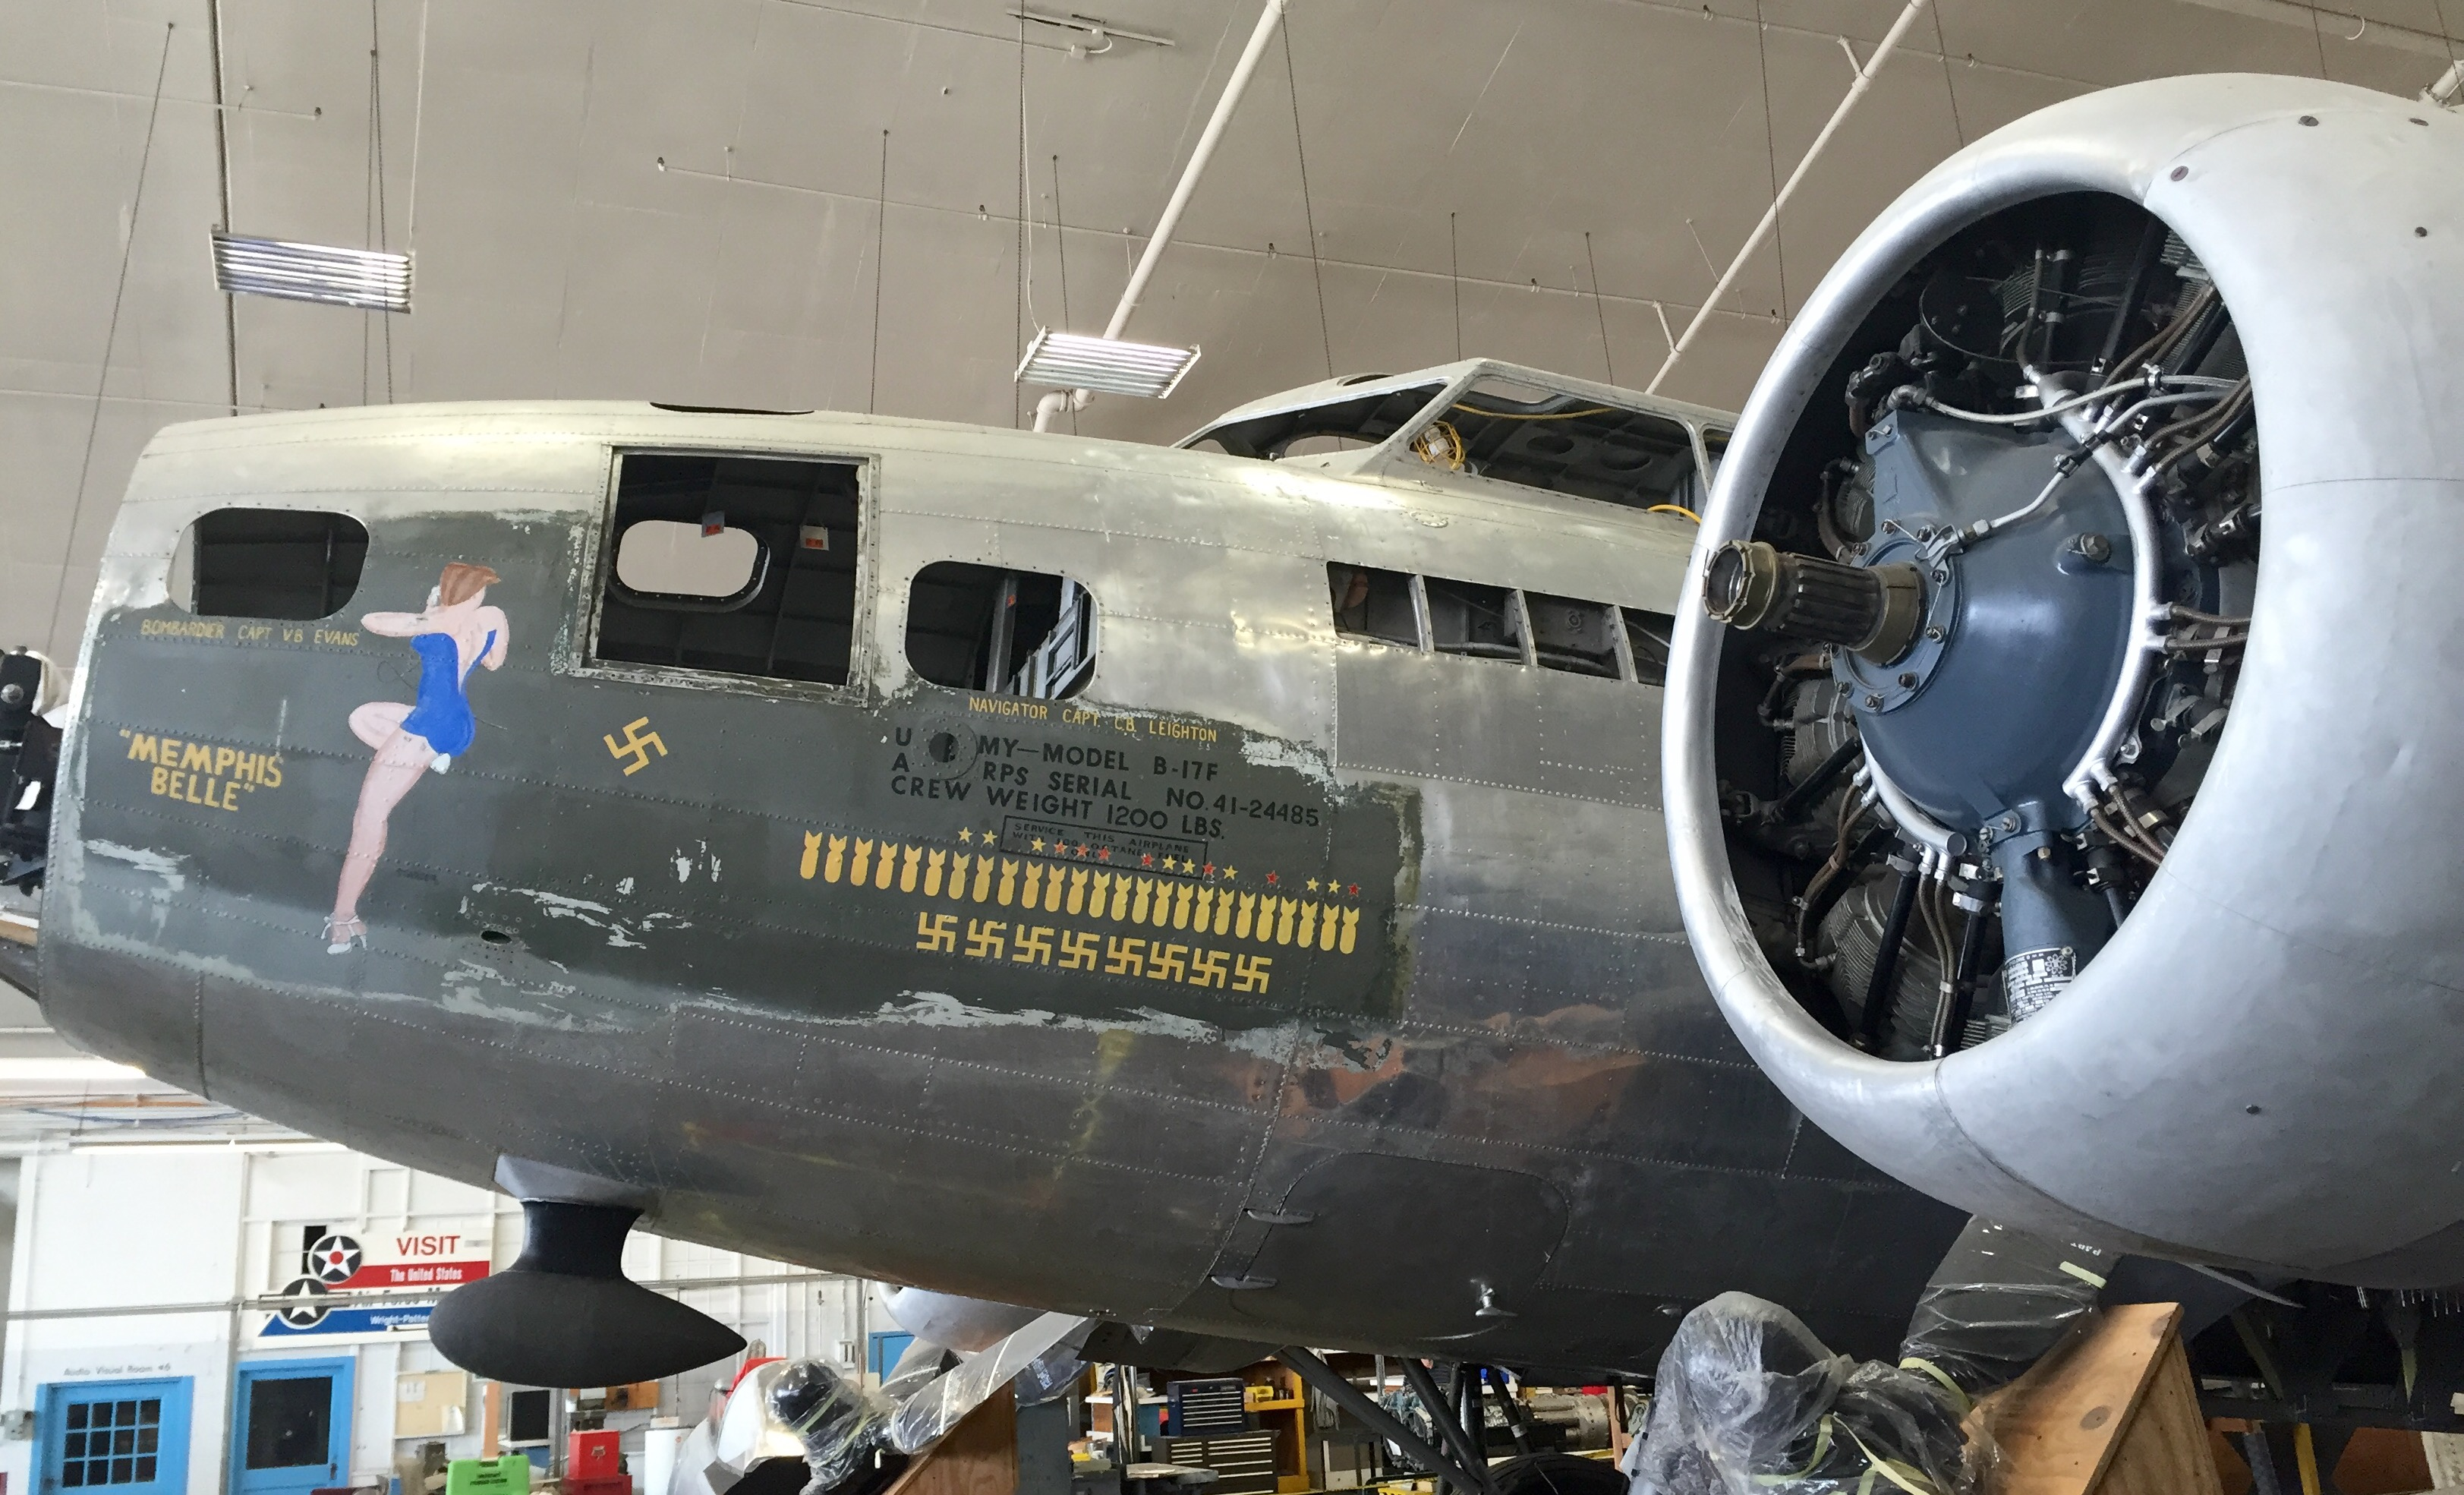 B-17F 'Memphis Belle' as she now sits in the restoration hangar at Wright-Patterson AFB in Dayton, Ohio. (photo by Frank Johnson)